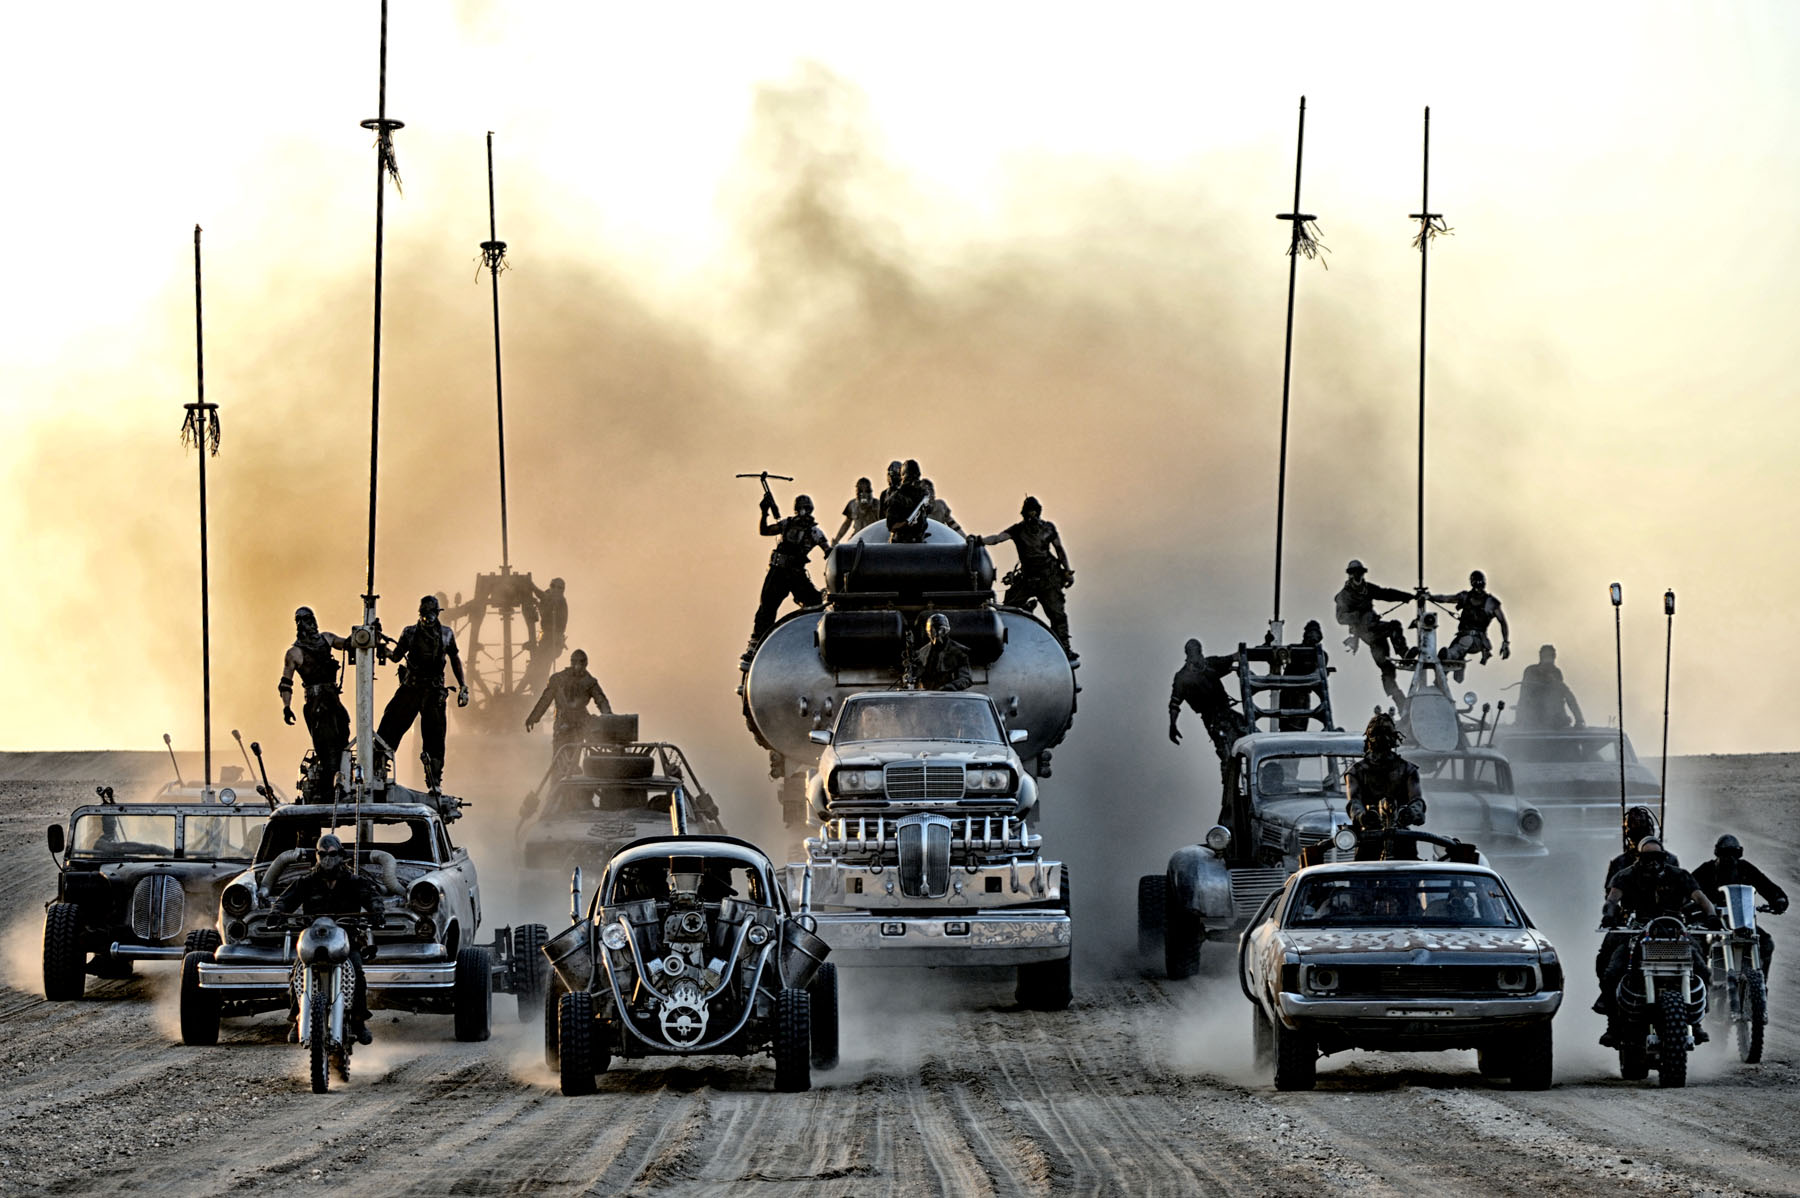 """The four horsemen of the apocalypse are always saddled up and ready to ride roughshod over population growth"" - scene from Mad Max: Fury Road found at http://www.rygestop.co/wp-content/uploads/2015/03/2015-Mad-Max-Fury-Road-Hi-Res-Wallpaper-up8cq-Free.jpeg"